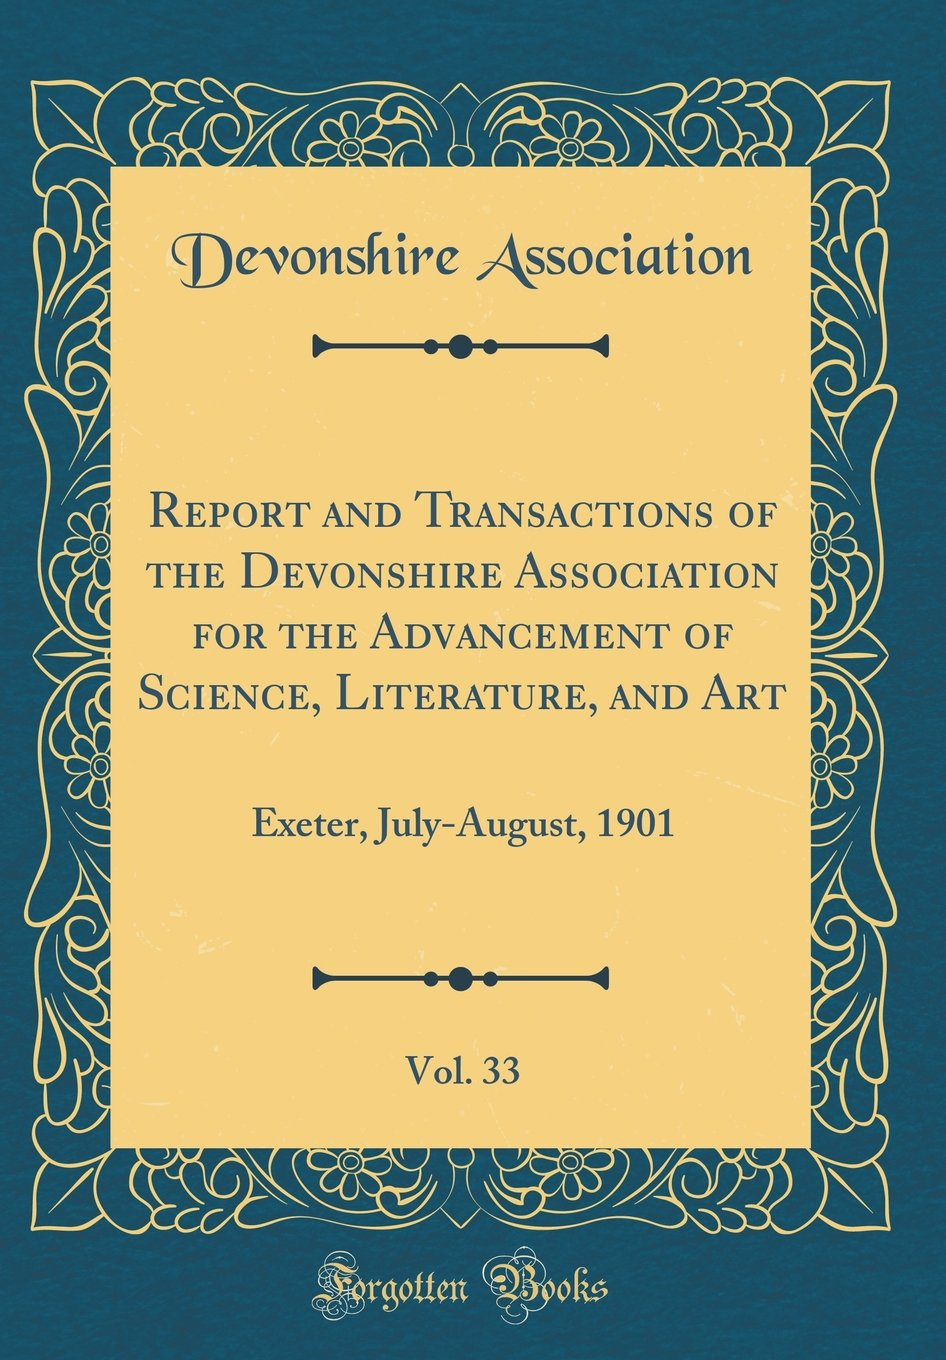 Download Report and Transactions of the Devonshire Association for the Advancement of Science, Literature, and Art, Vol. 33: Exeter, July-August, 1901 (Classic Reprint) ebook